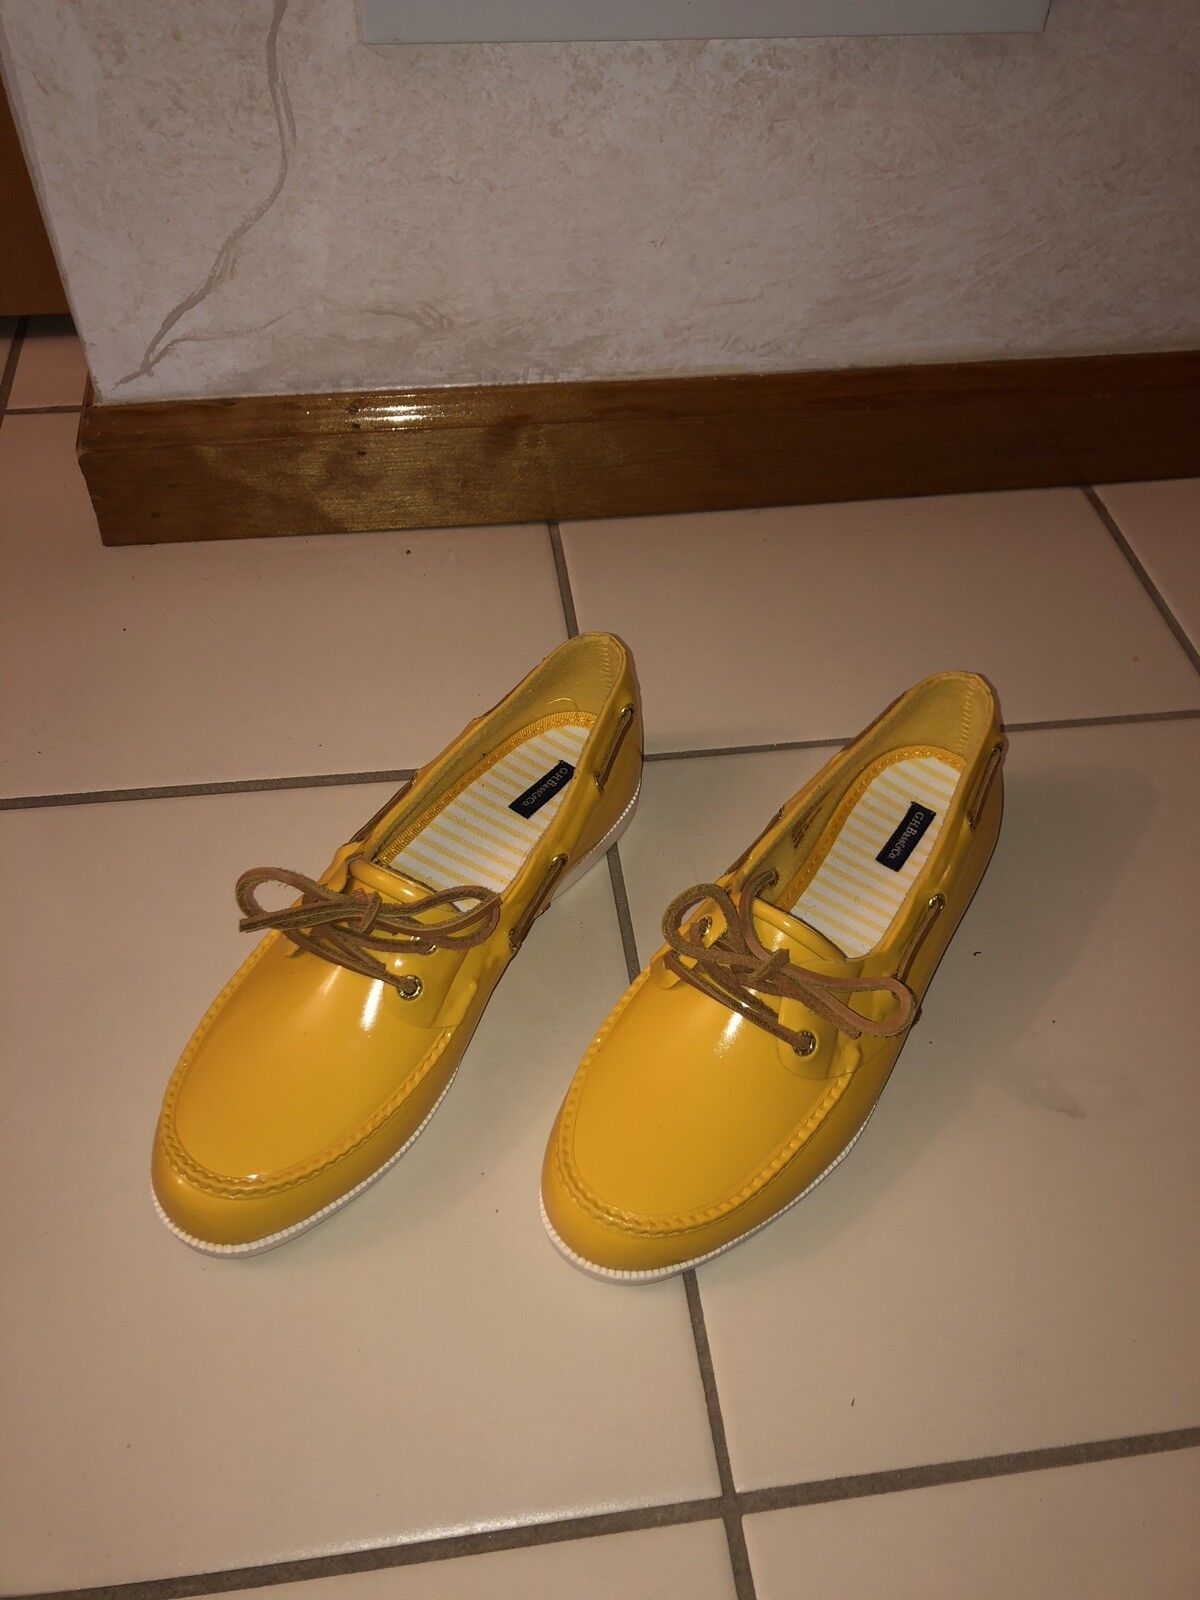 G.H. Bass & Co. Bass-Bay Yellow Slip On Lace Up Oxfords Women's Boat shoes